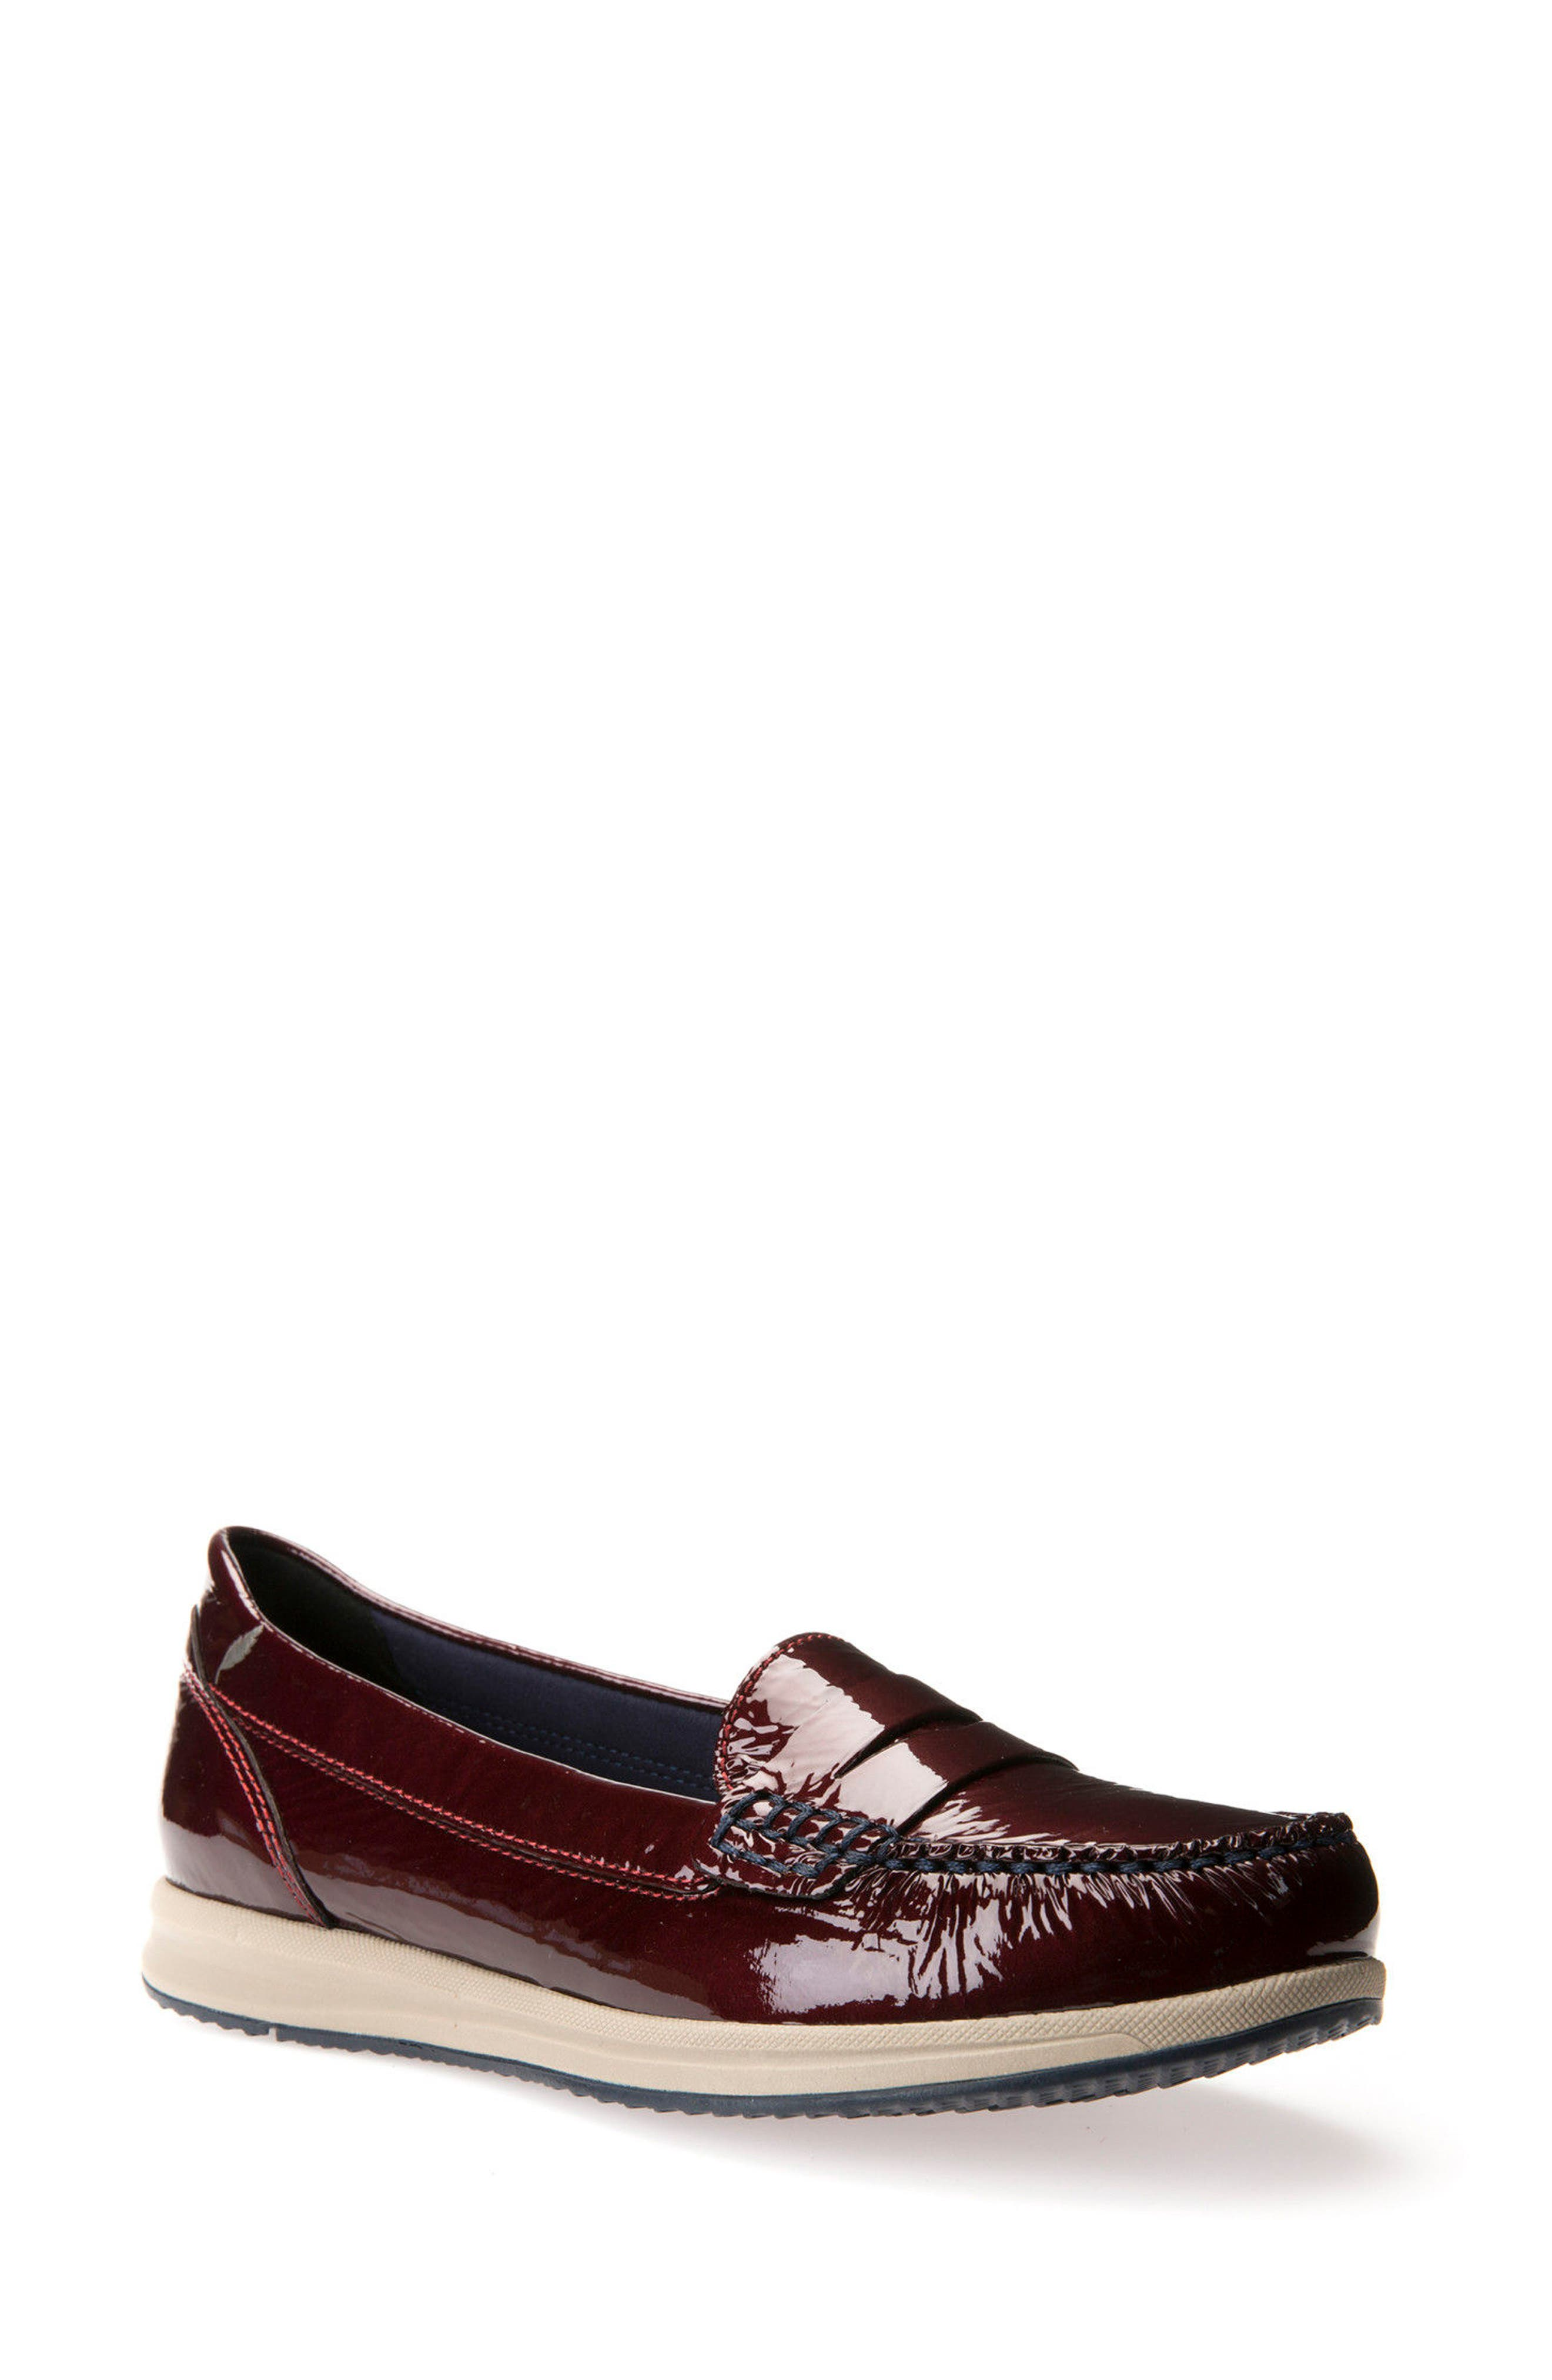 Avery Loafer,                             Main thumbnail 1, color,                             935